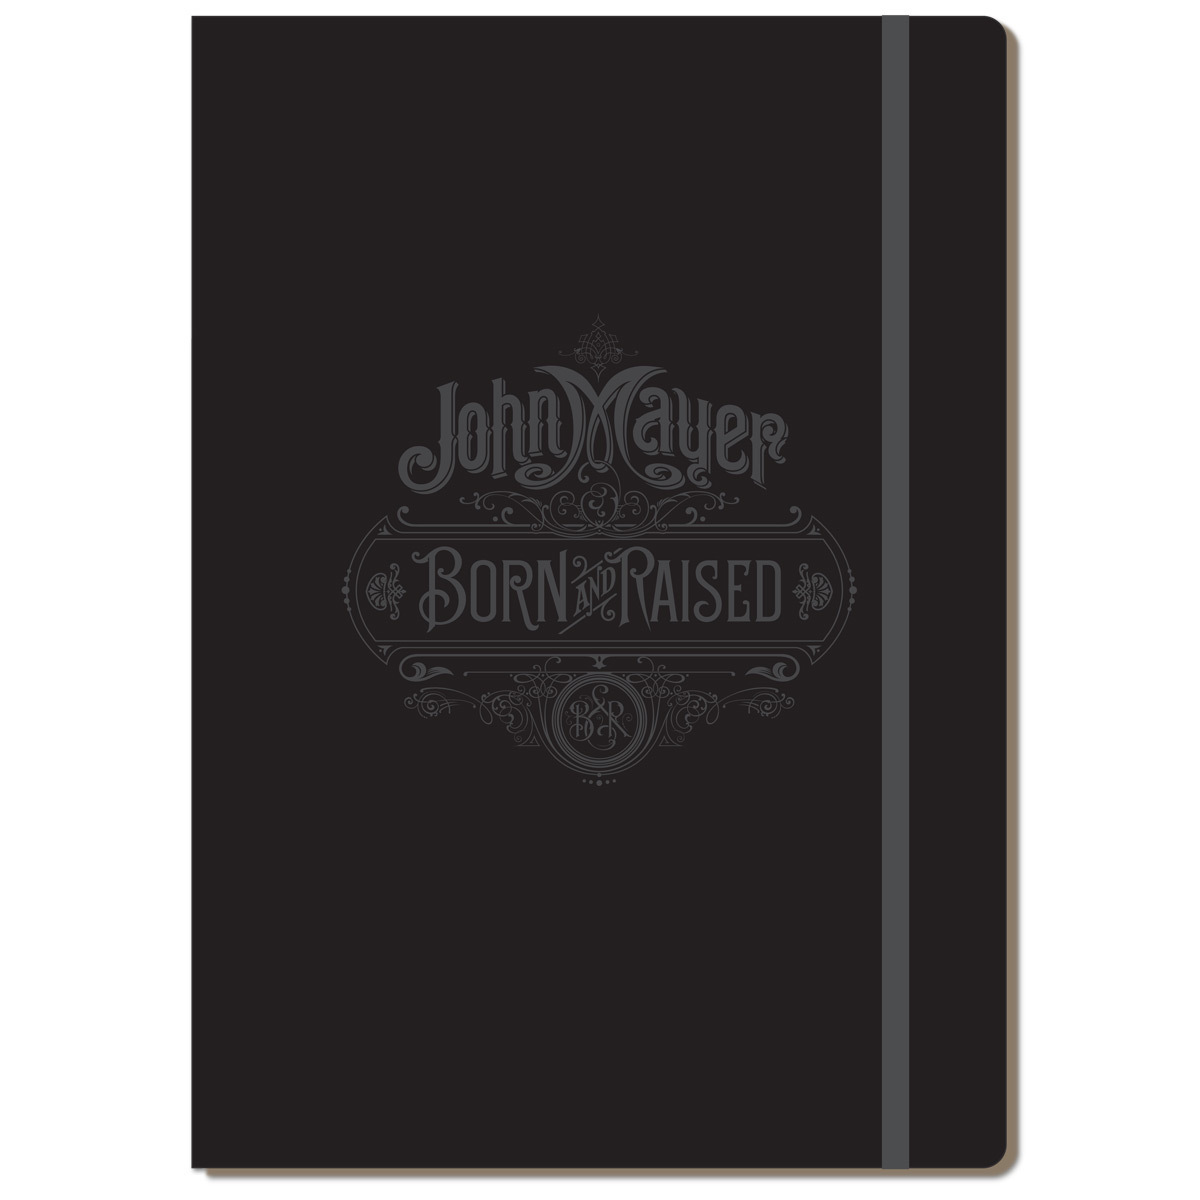 Born and Raised A4 Folio Notebook by Moleskine